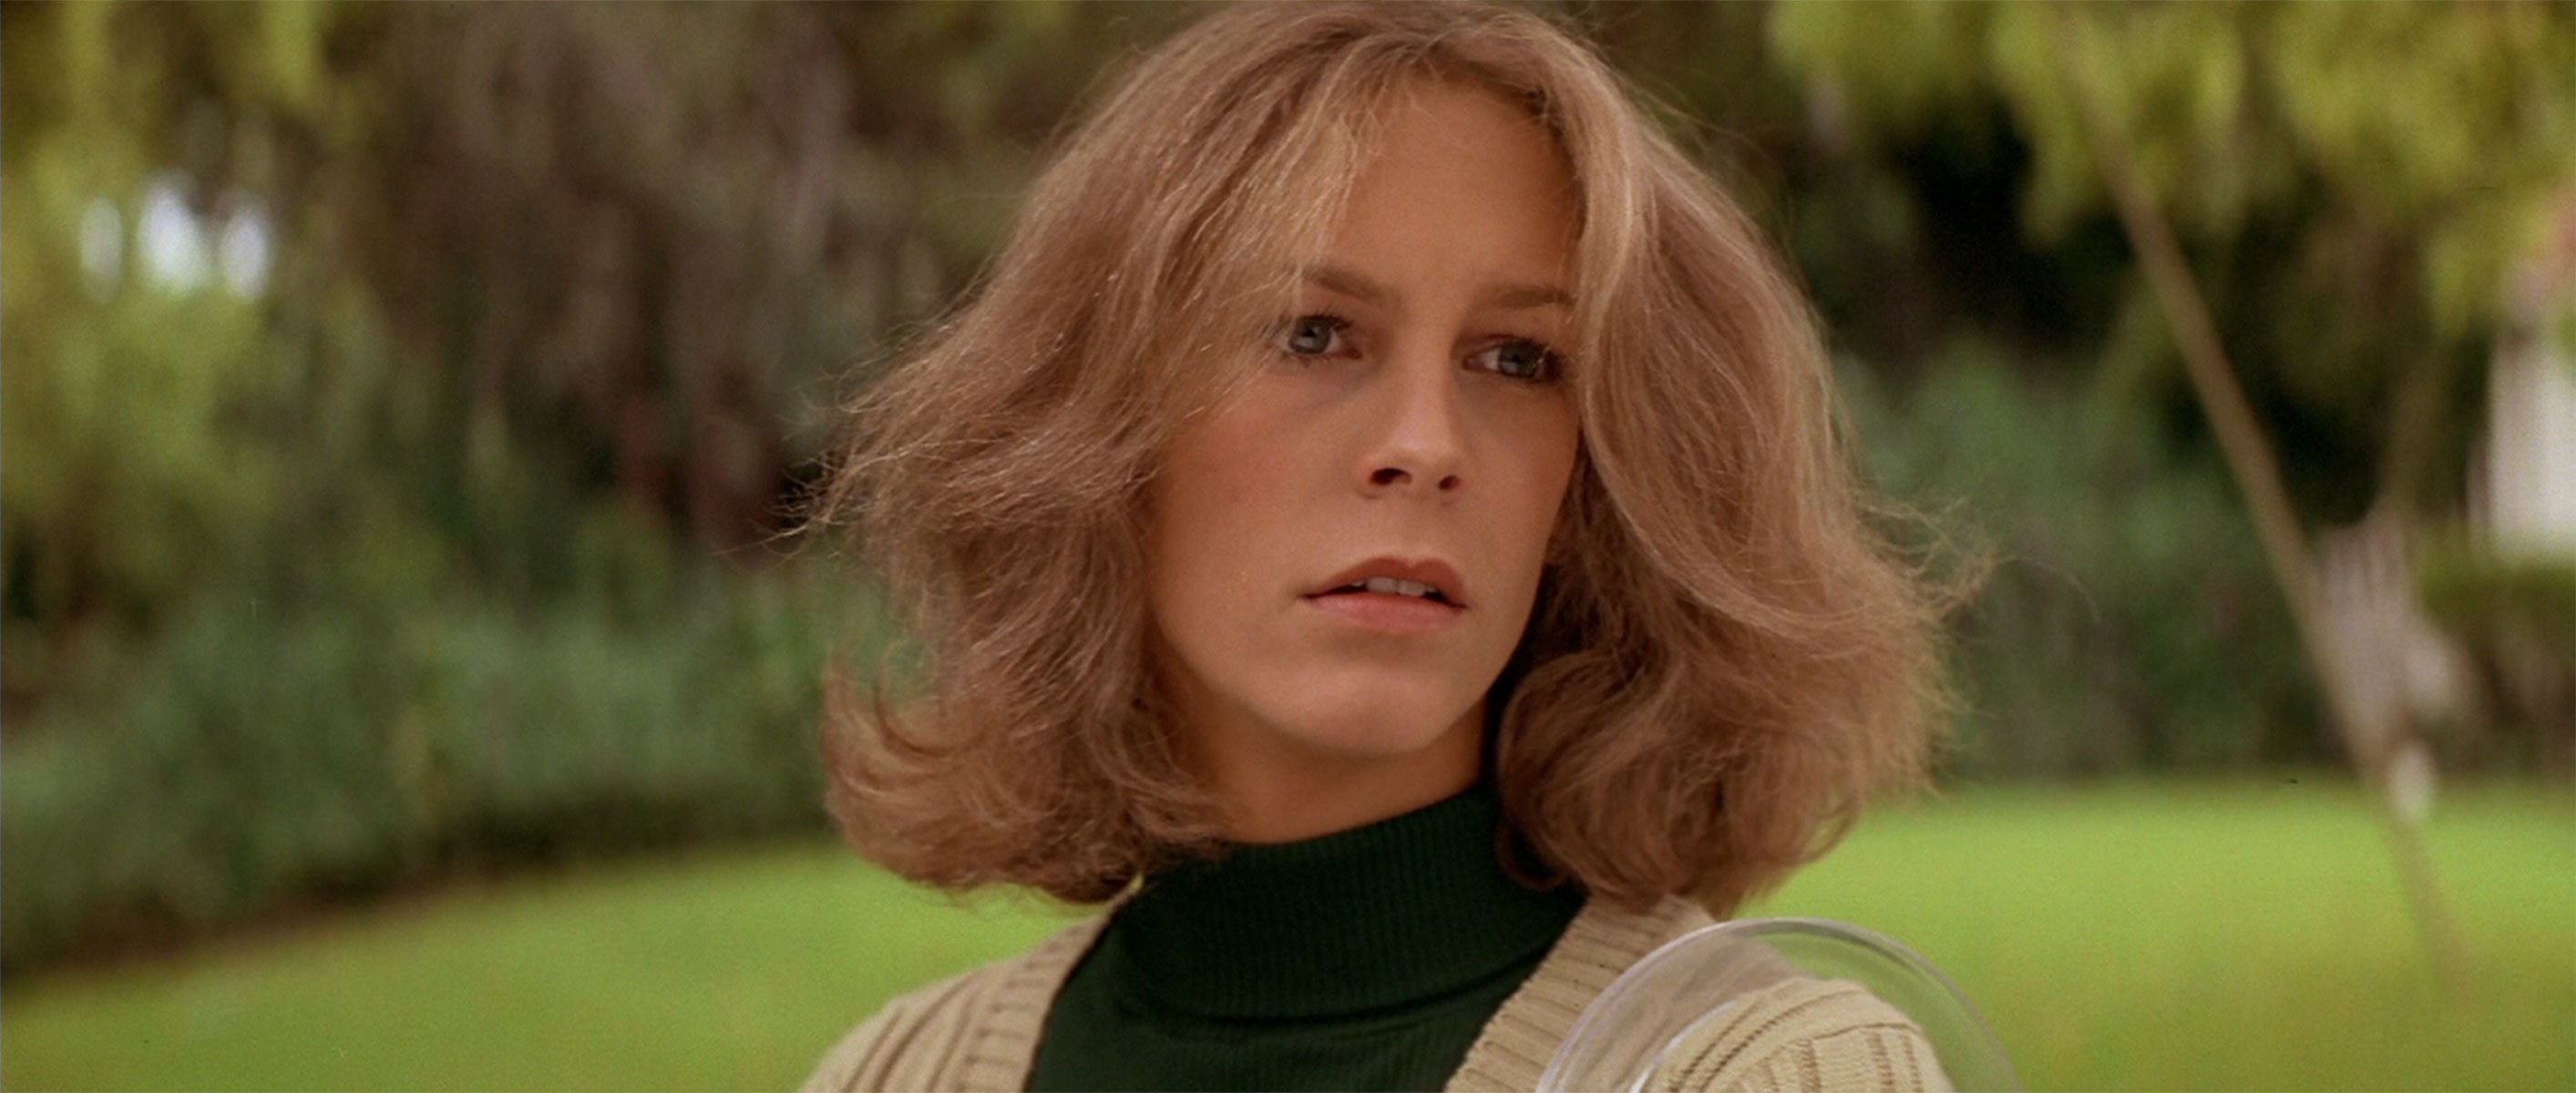 Image from Halloween showing Laurie